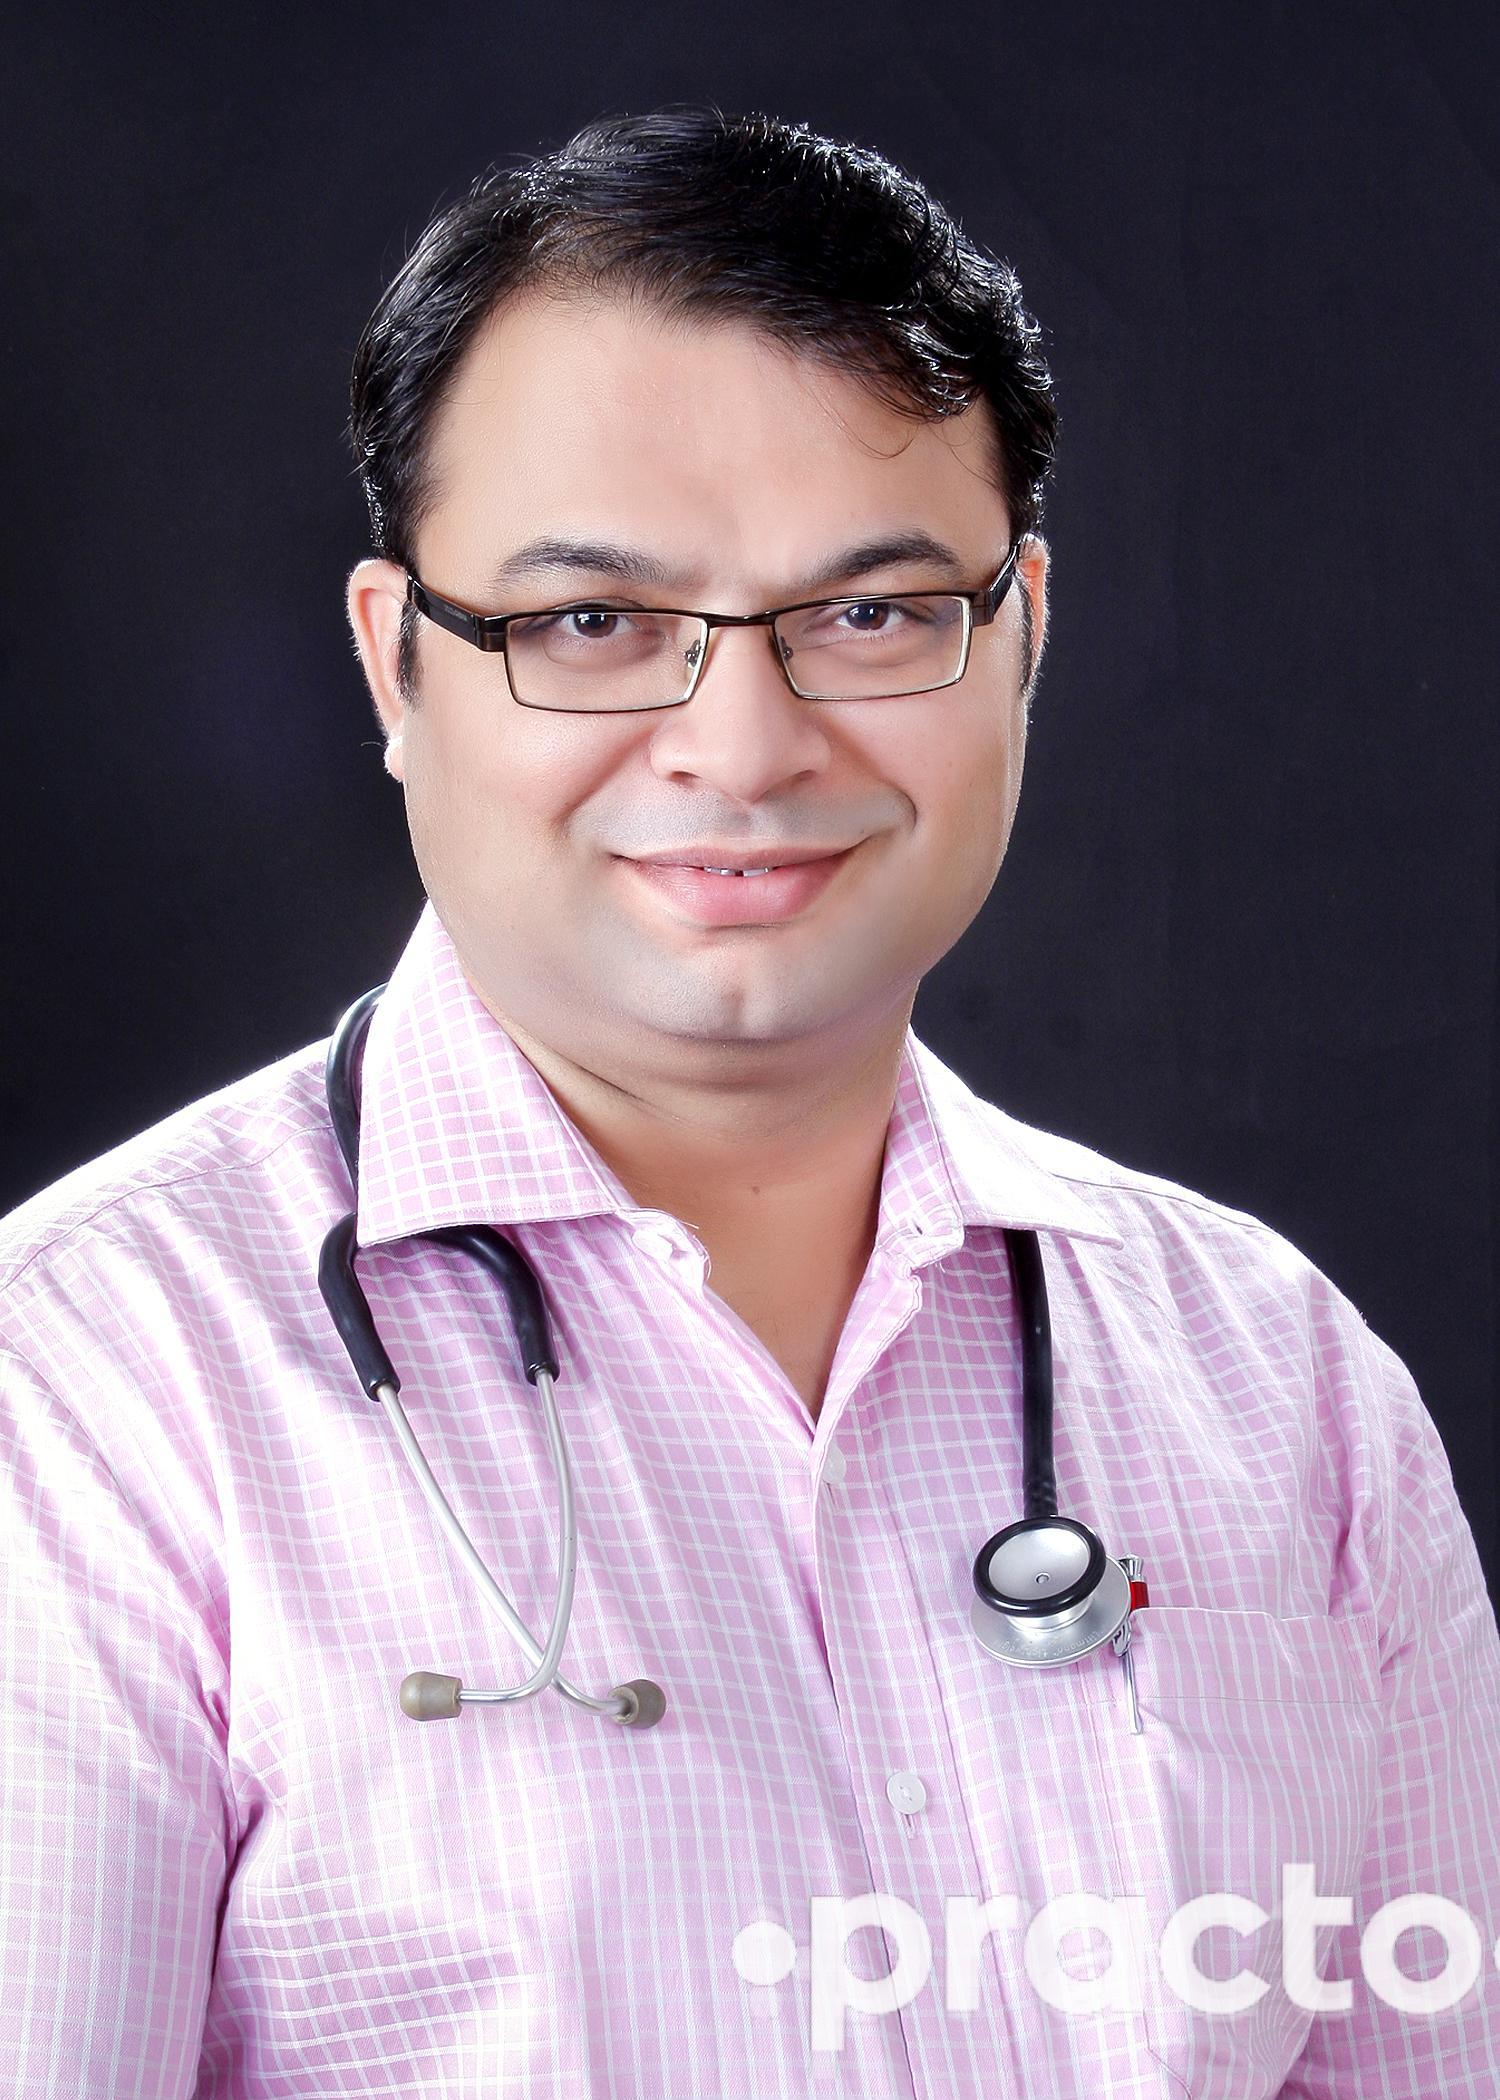 Dr. Ankush Arya - Ear-Nose-Throat (ENT) Specialist